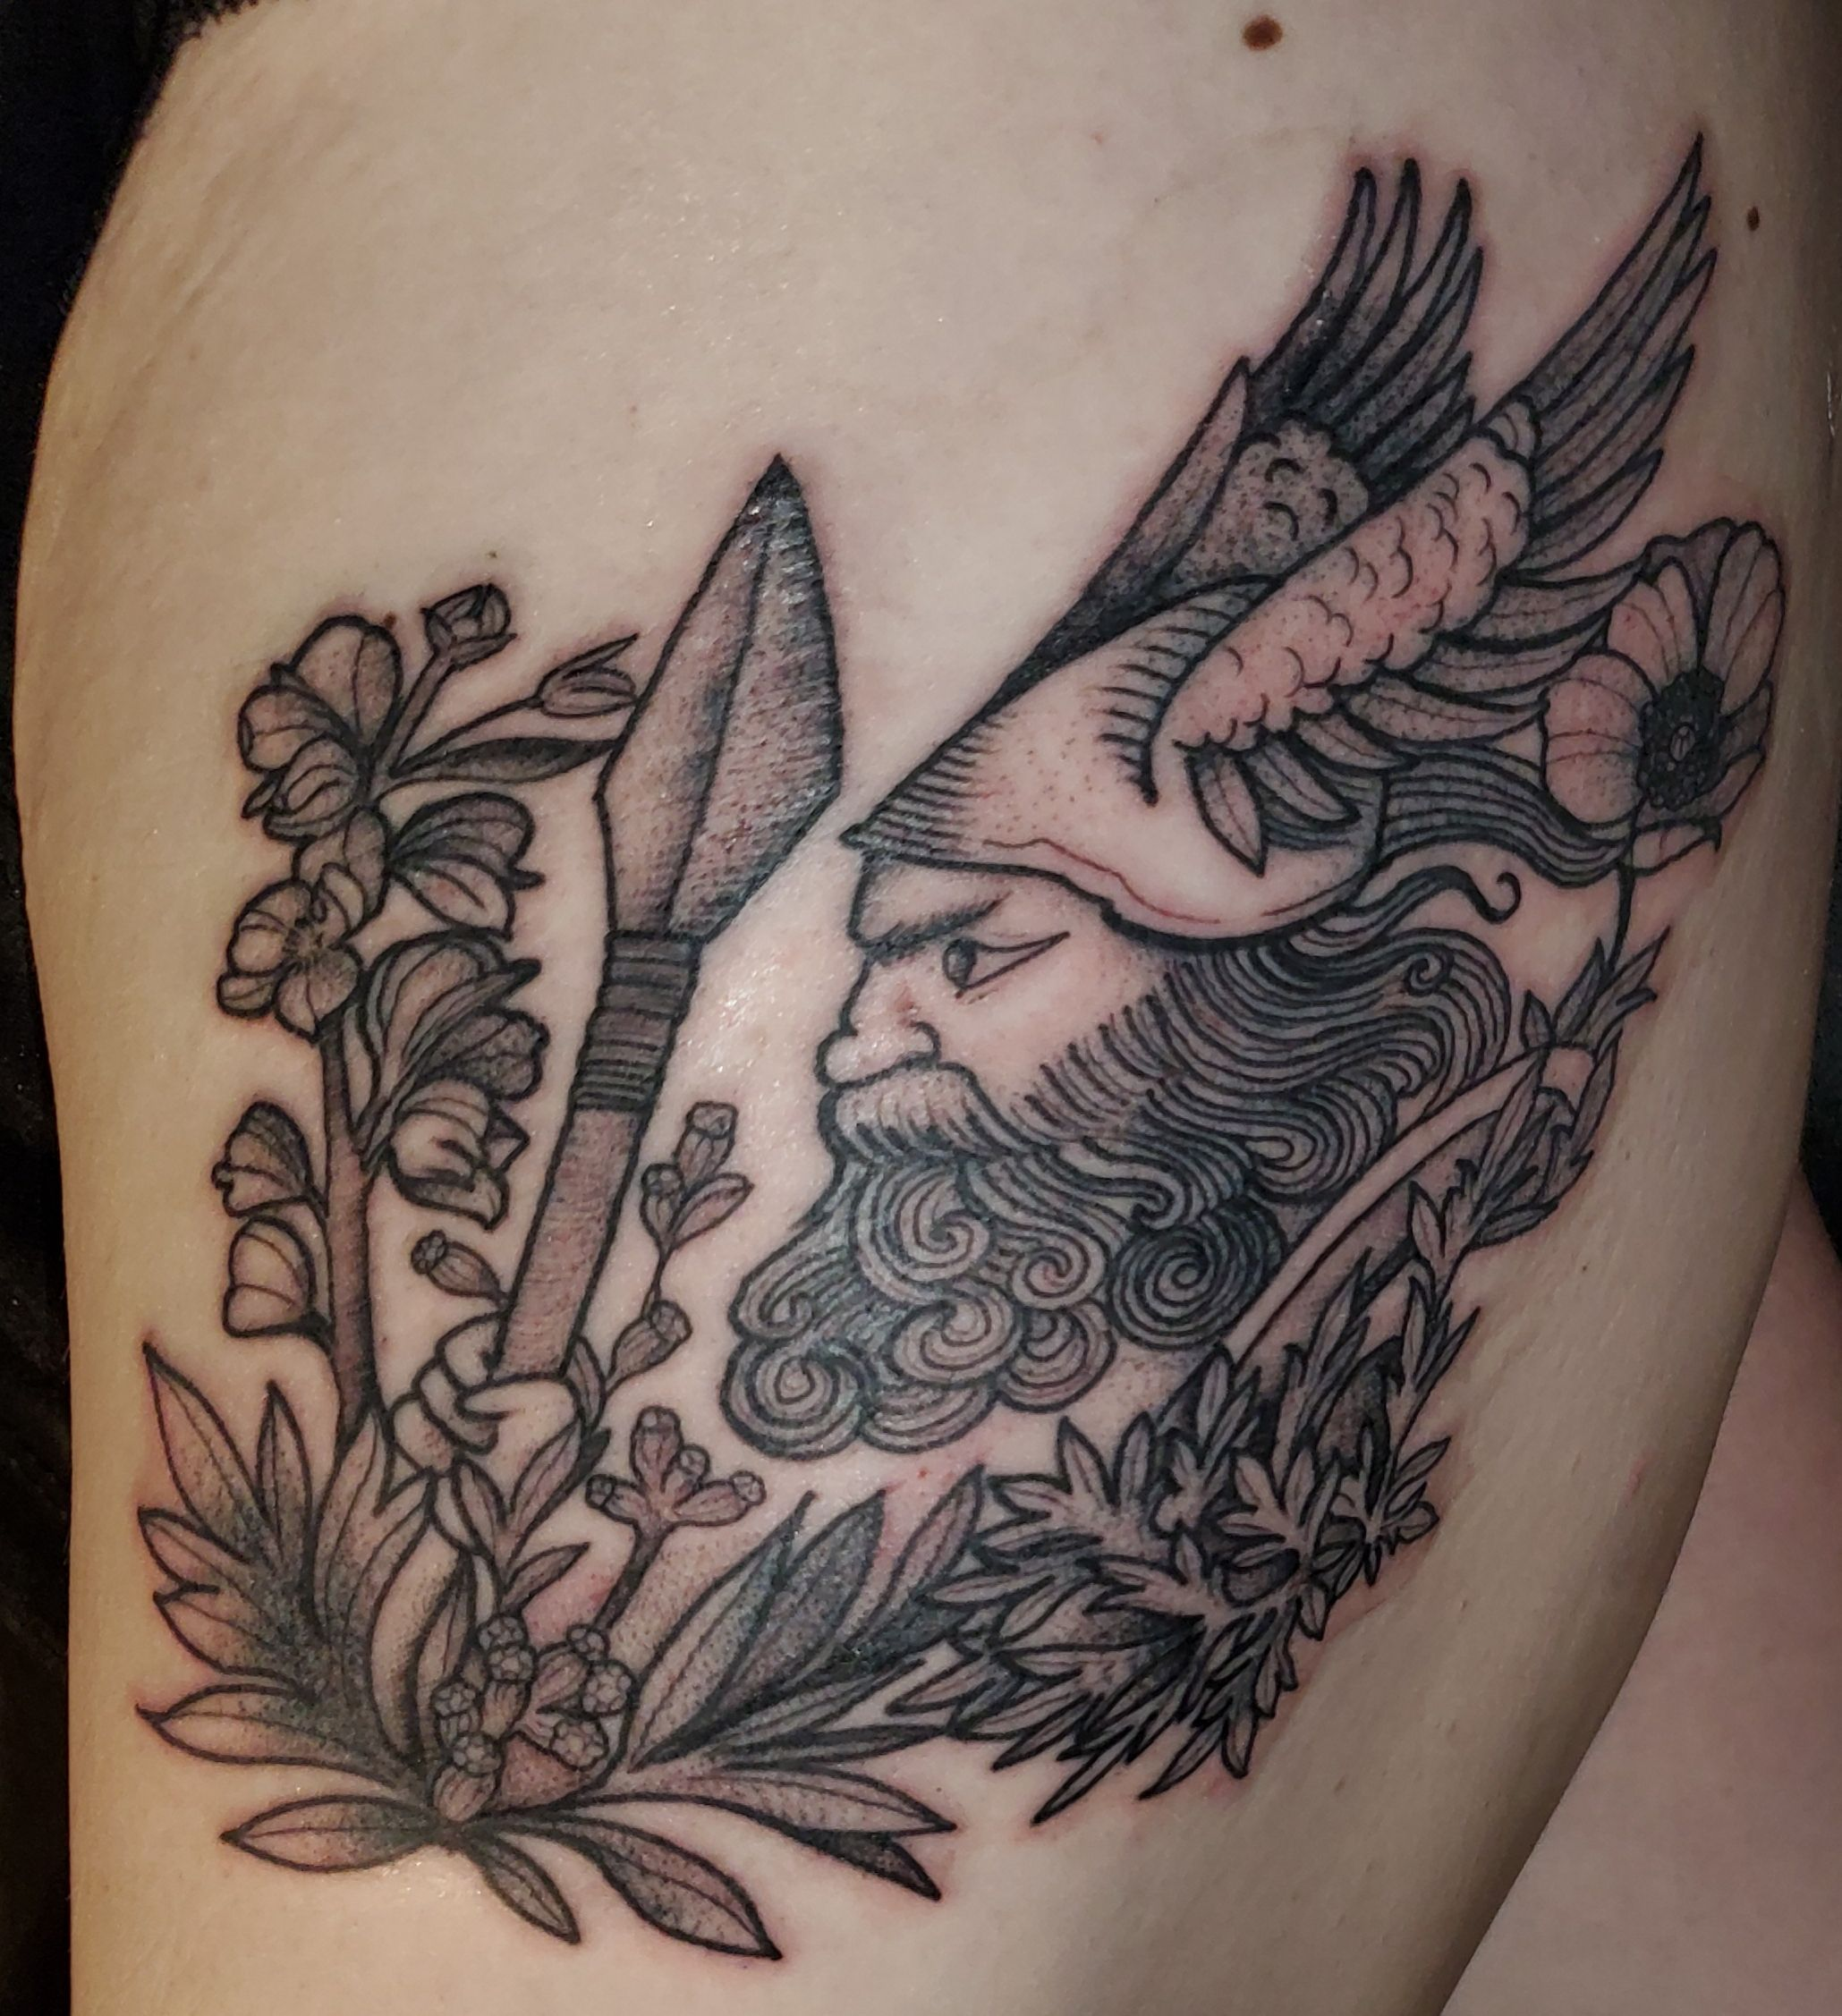 Filthy viking and florals by sierra at golden spiral